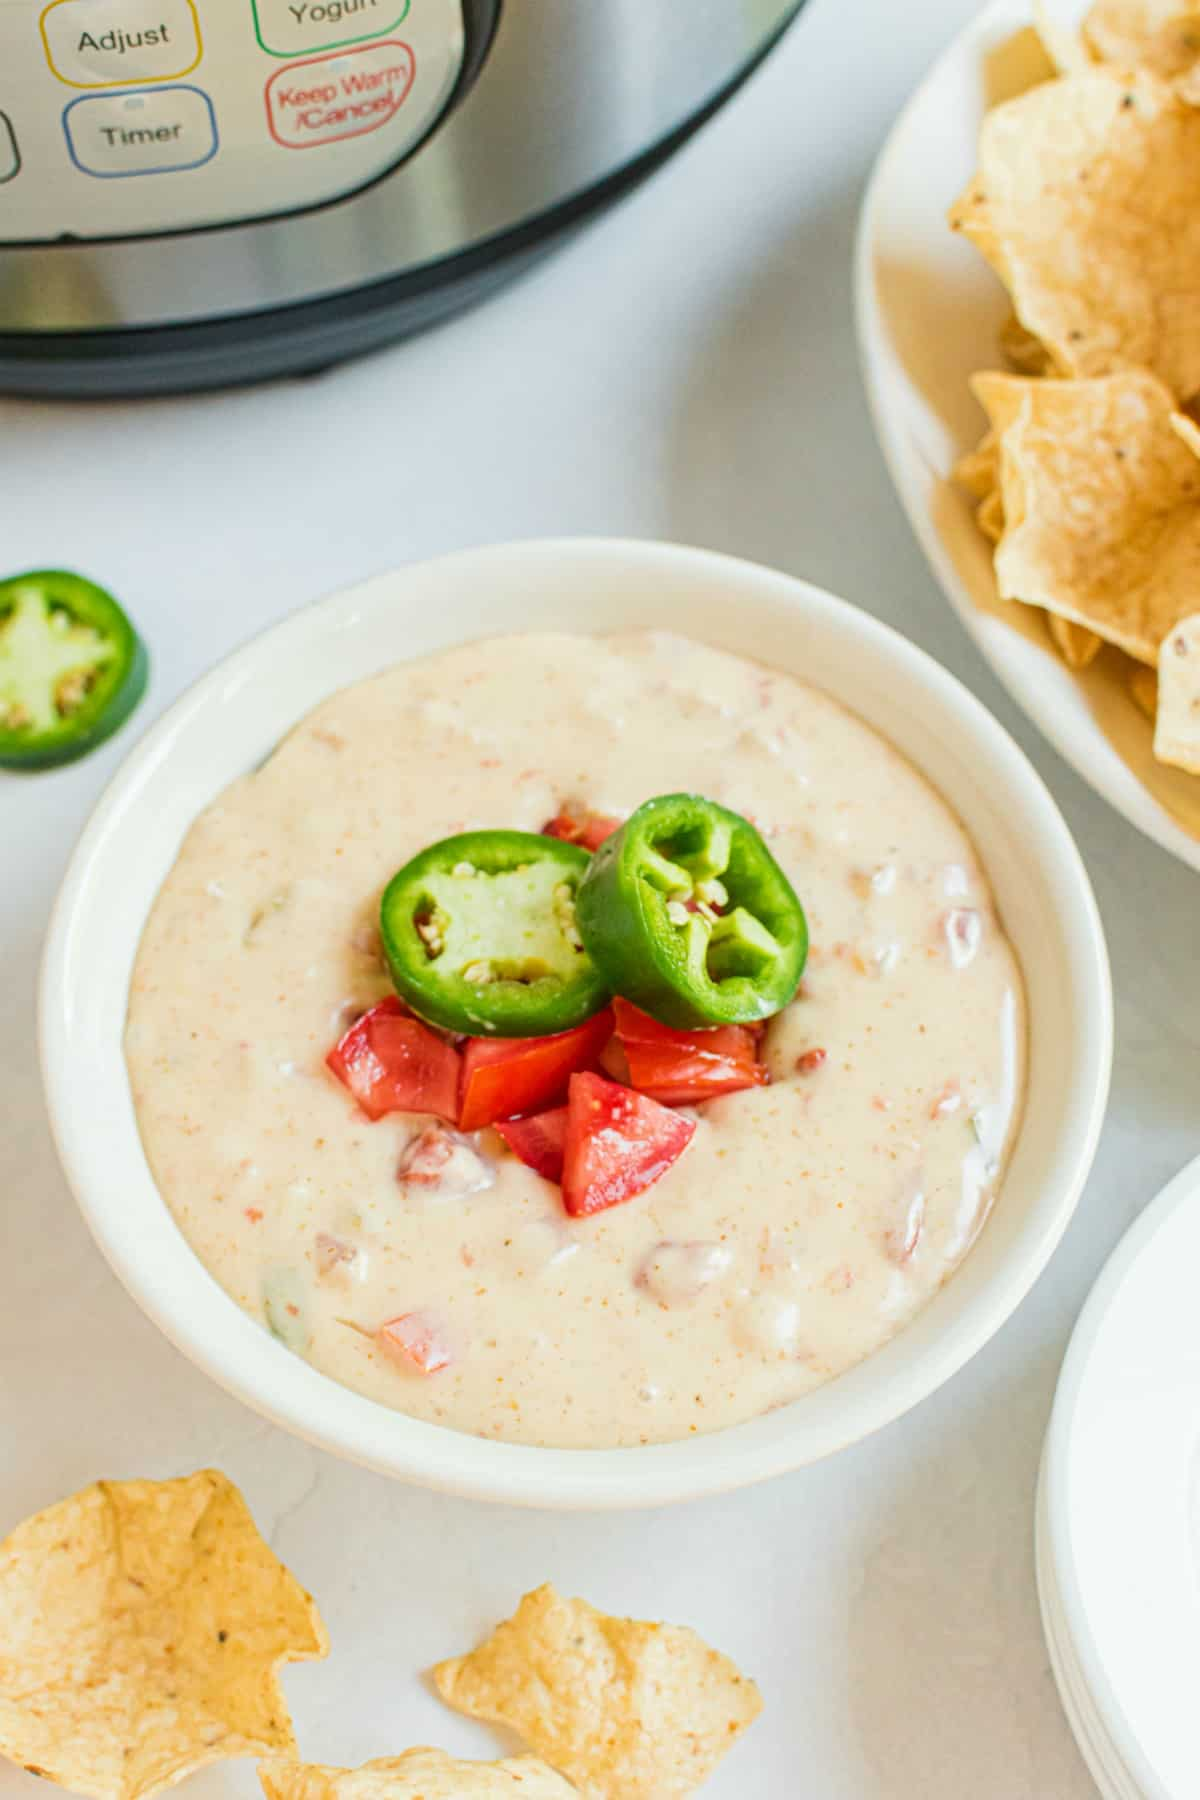 White cheddar queso in a bowl with tortilla chips on side.